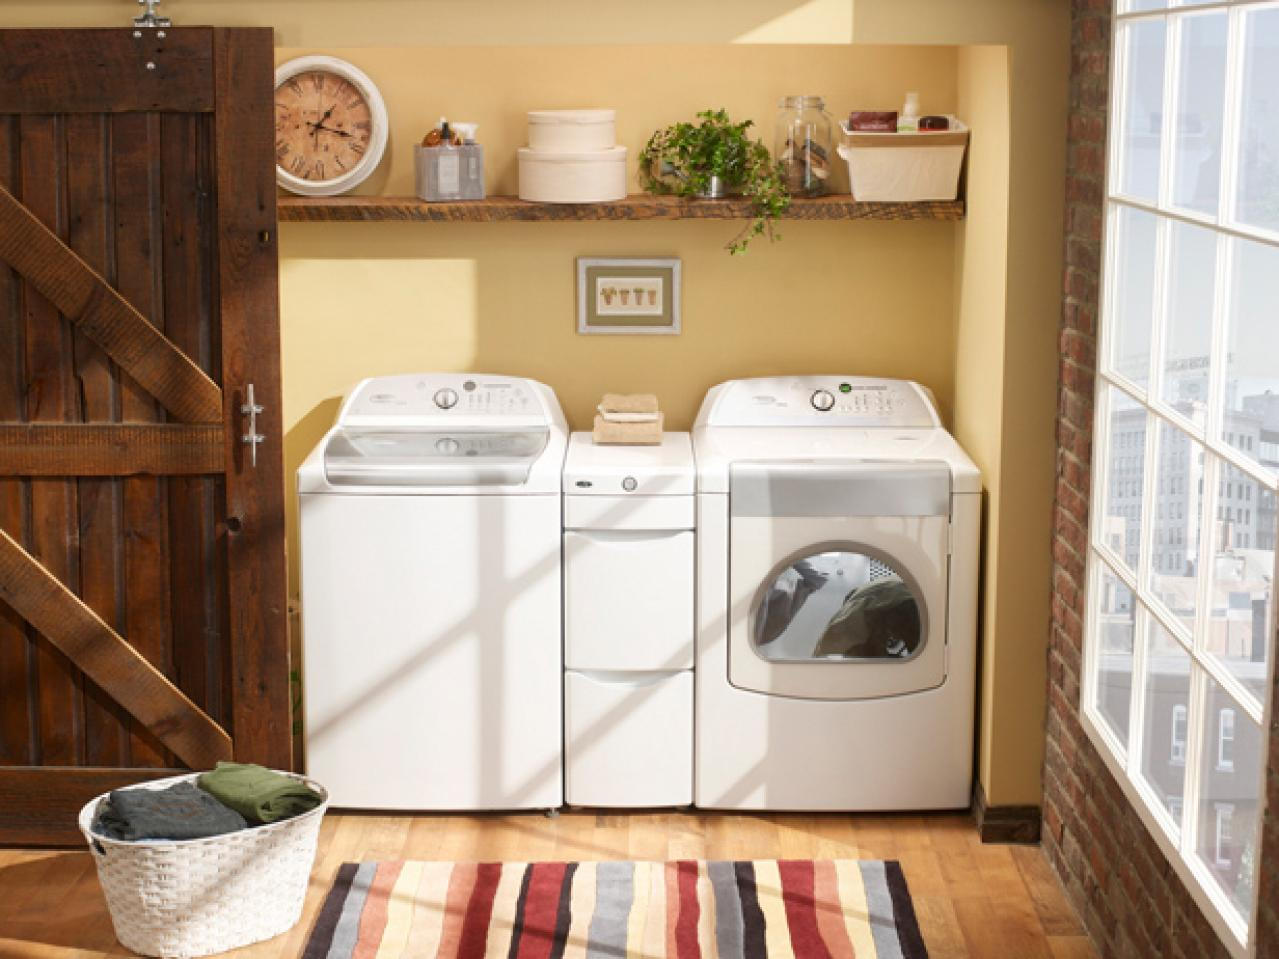 Captivating 7 Stylish Laundry Room Decor Ideas | HGTVu0027s Decorating U0026 Design Blog | HGTV